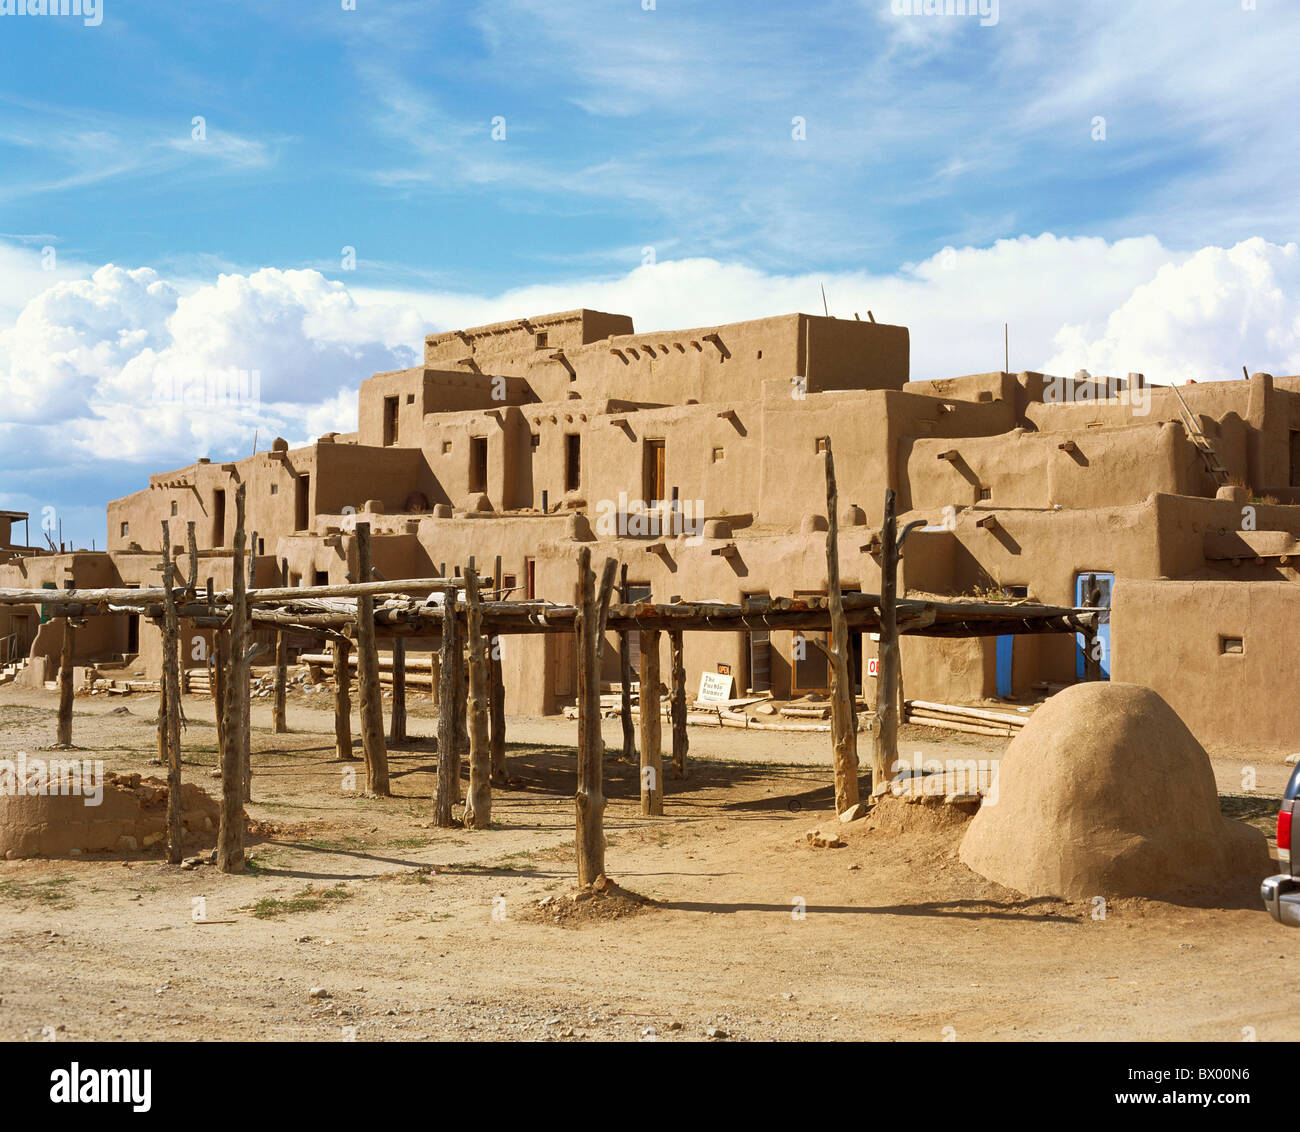 Architecture Houses Homes Indians Indian S Village Mucky Houses